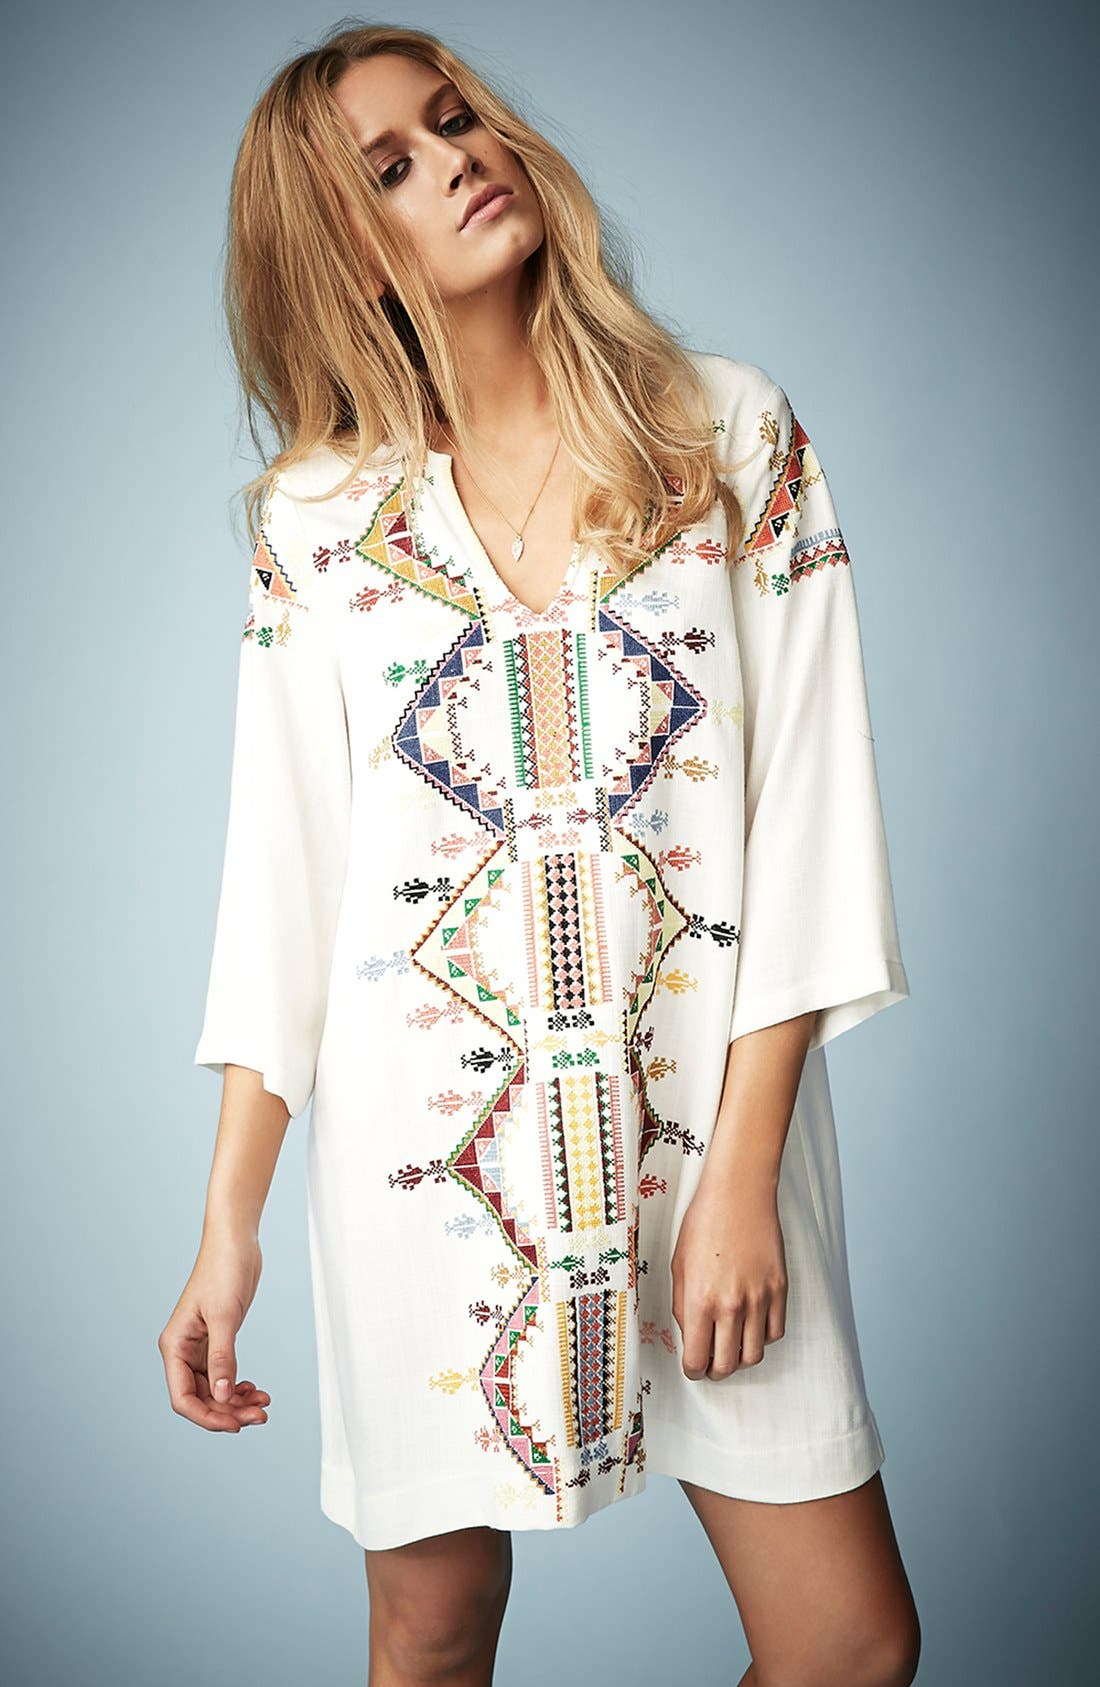 Main Image - Kate Moss for Topshop Embroidered Smock Dress